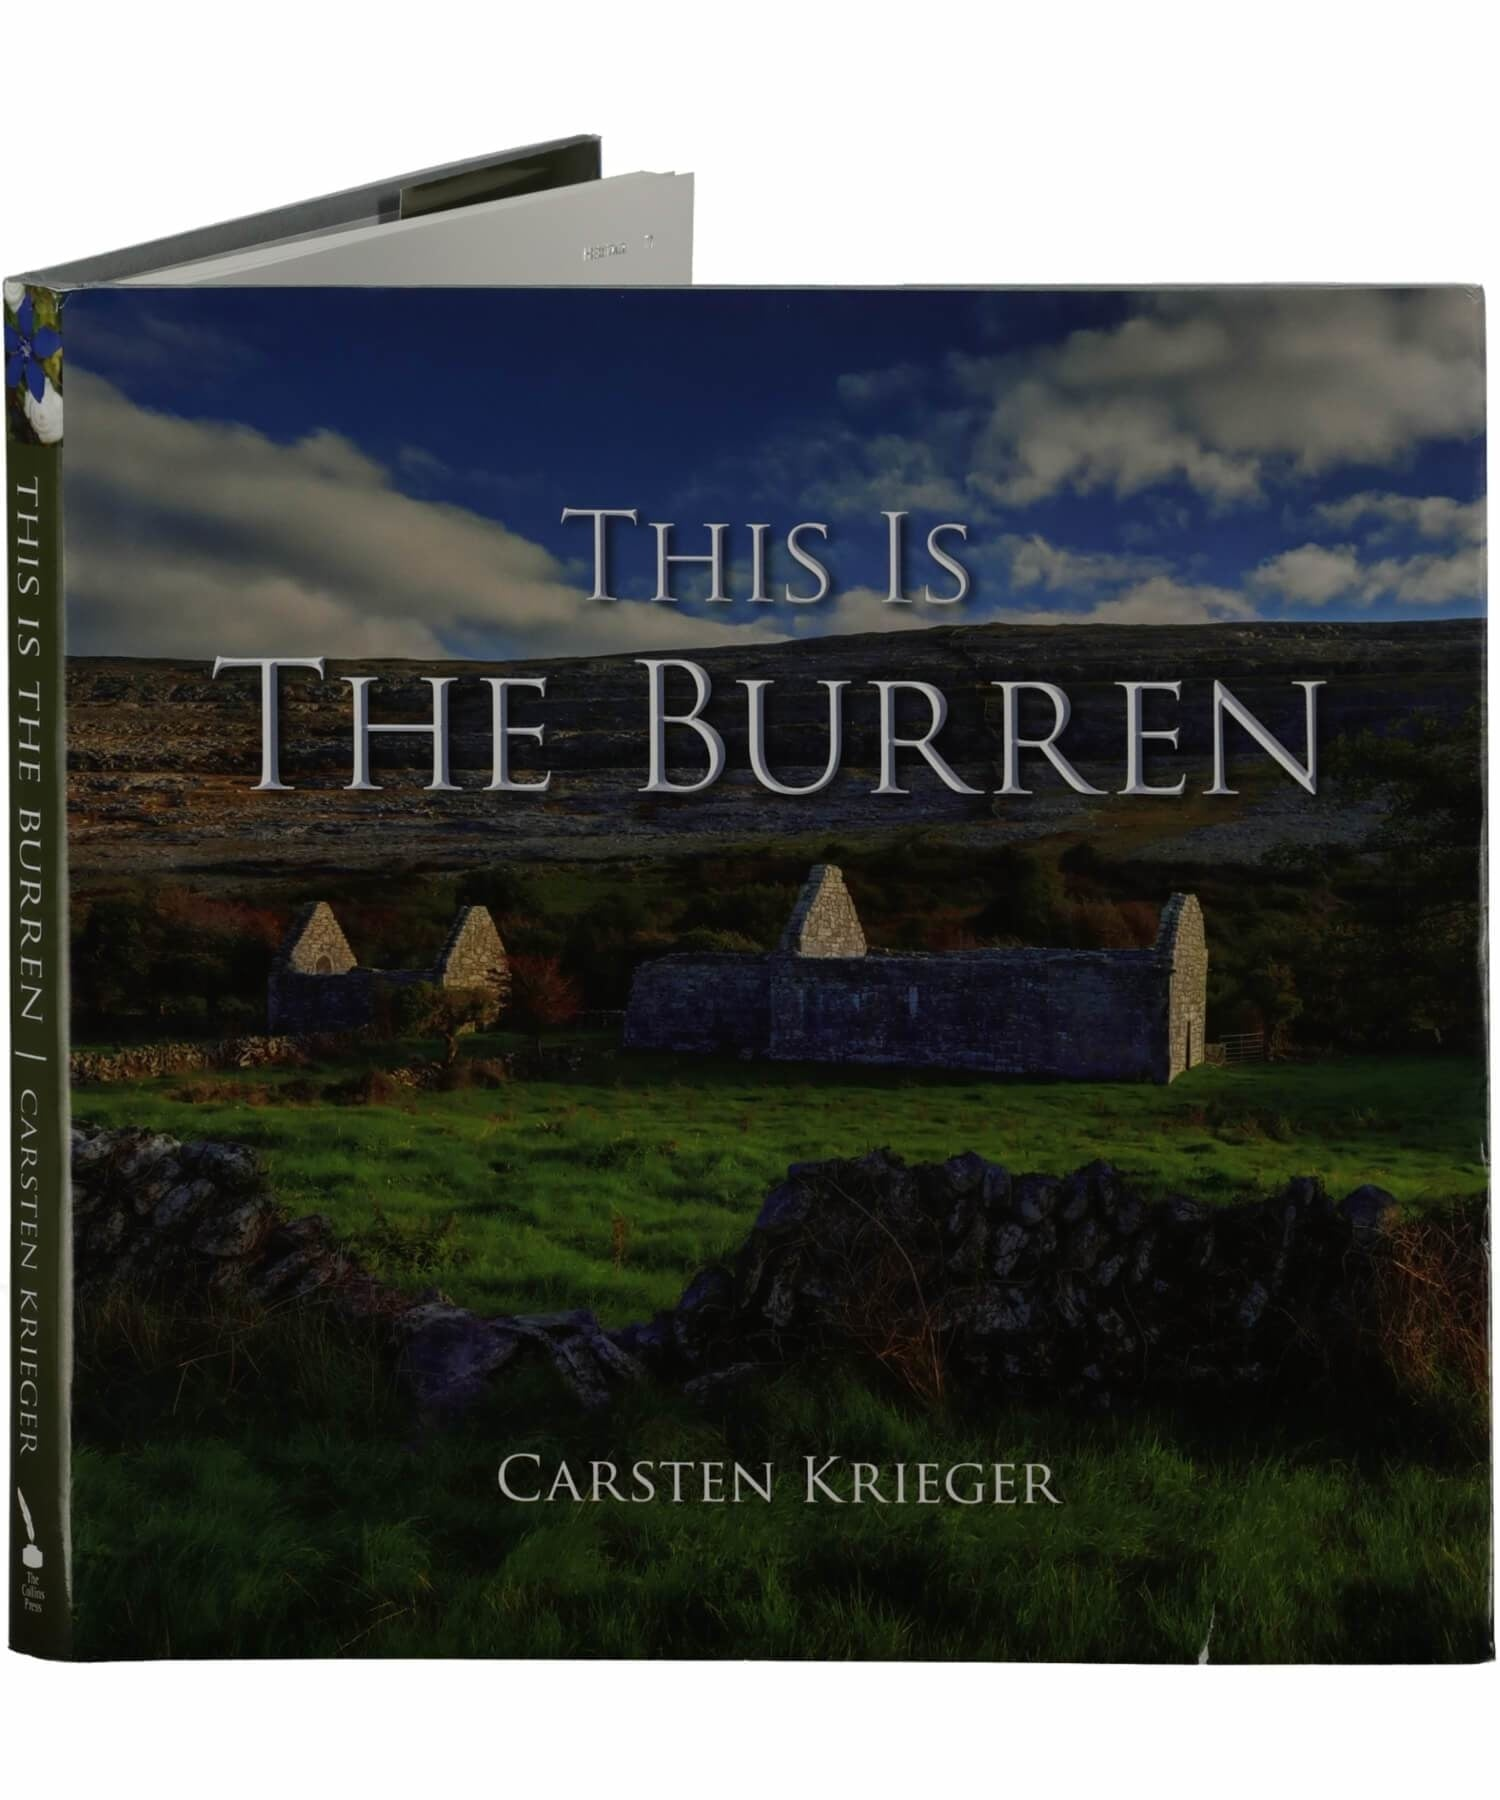 This Is The Burren - [The Collins Press] - Books & Stationery - Irish Gifts